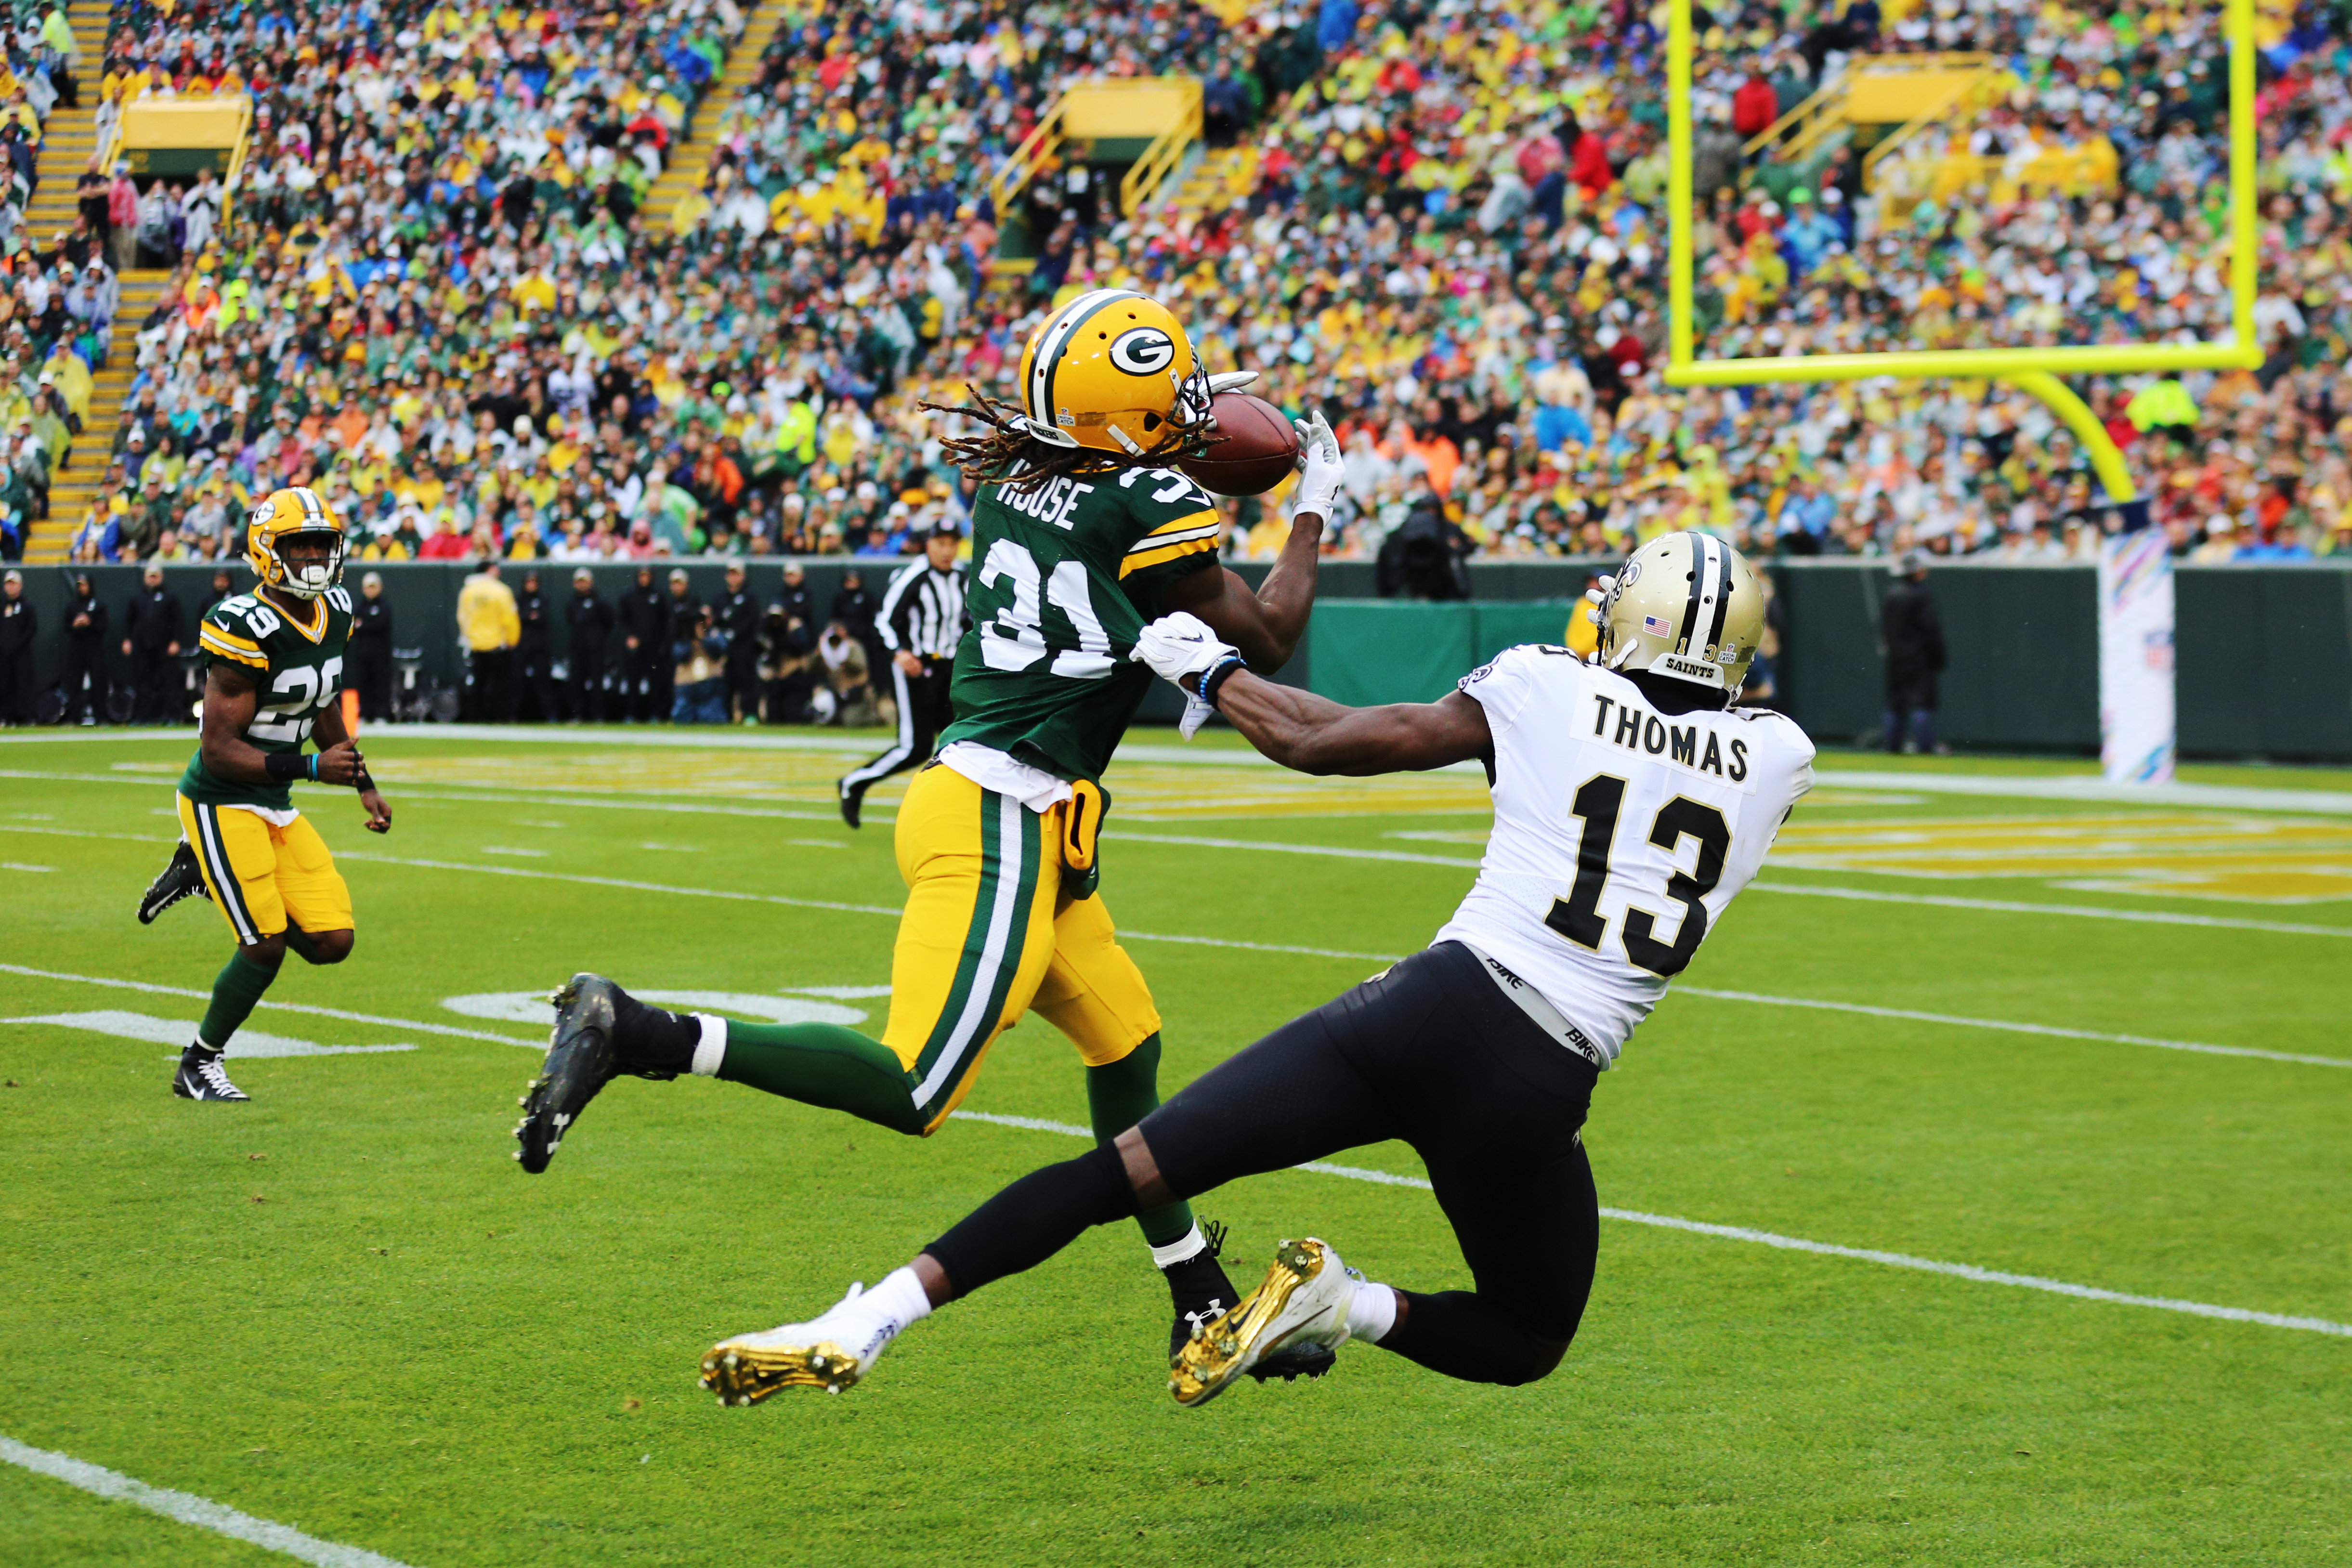 NFL: OCT 22 Saints at Packers